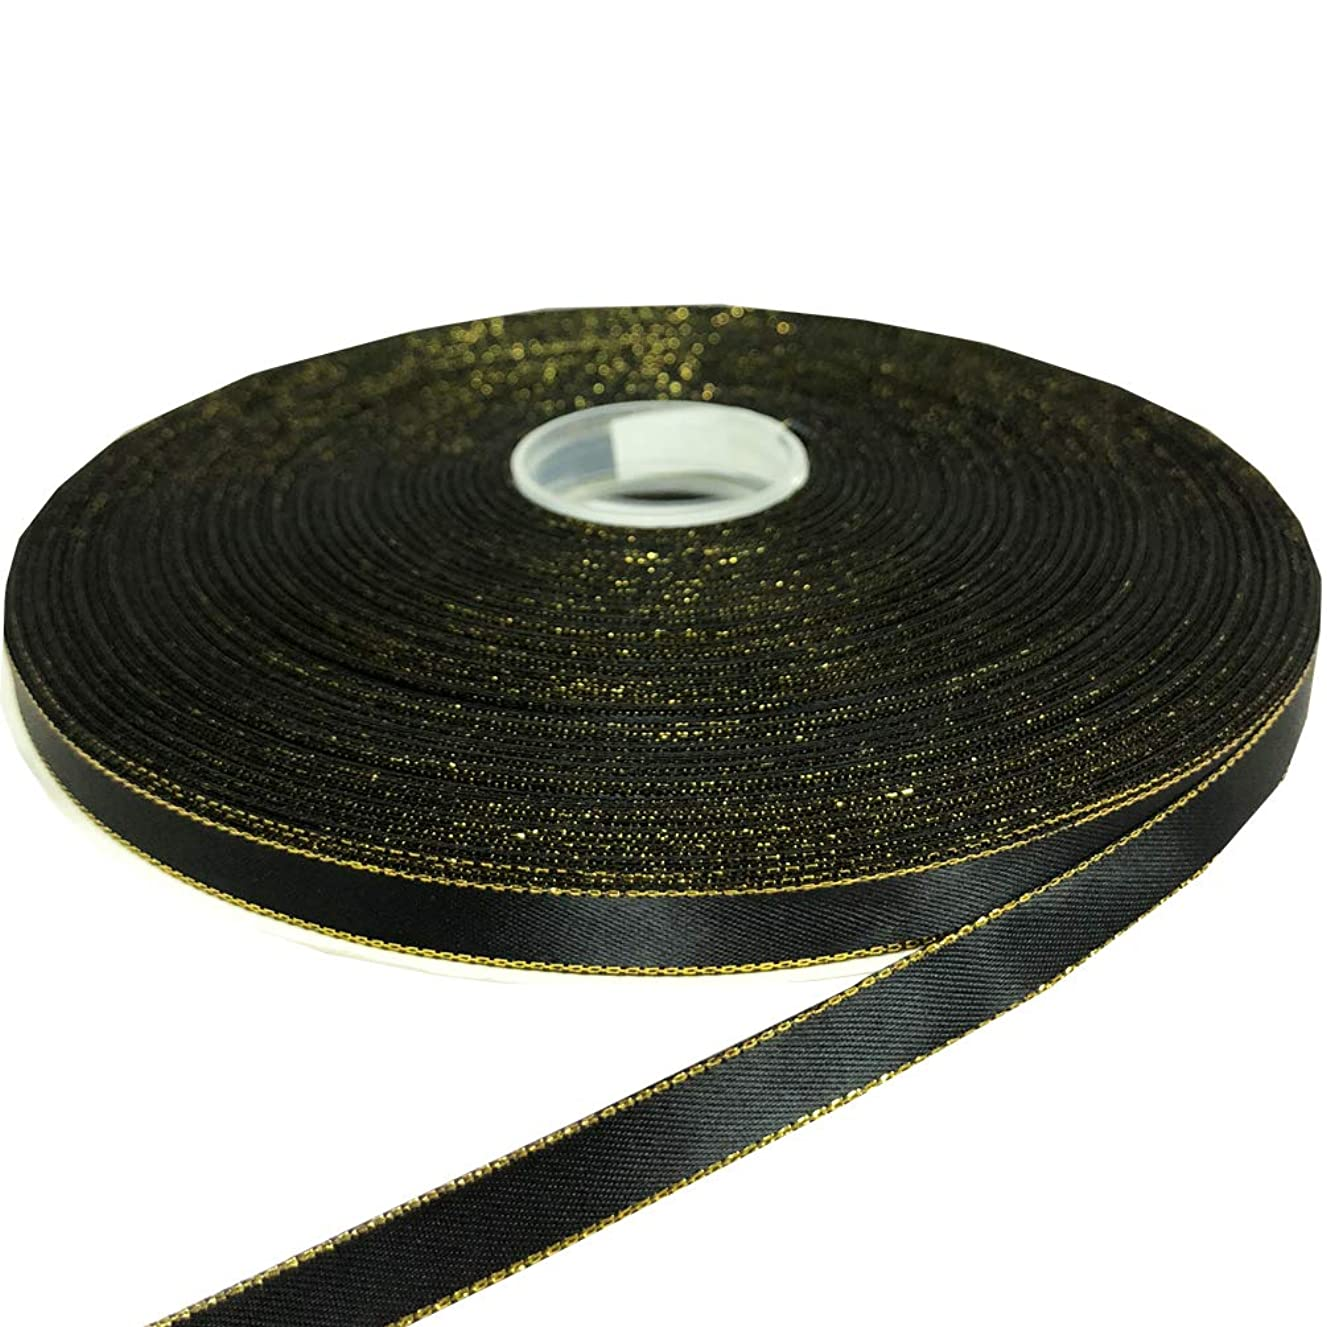 PartyMart 3/8 Inch Satin Ribbon with Golden Edges, 100 YDS, Black